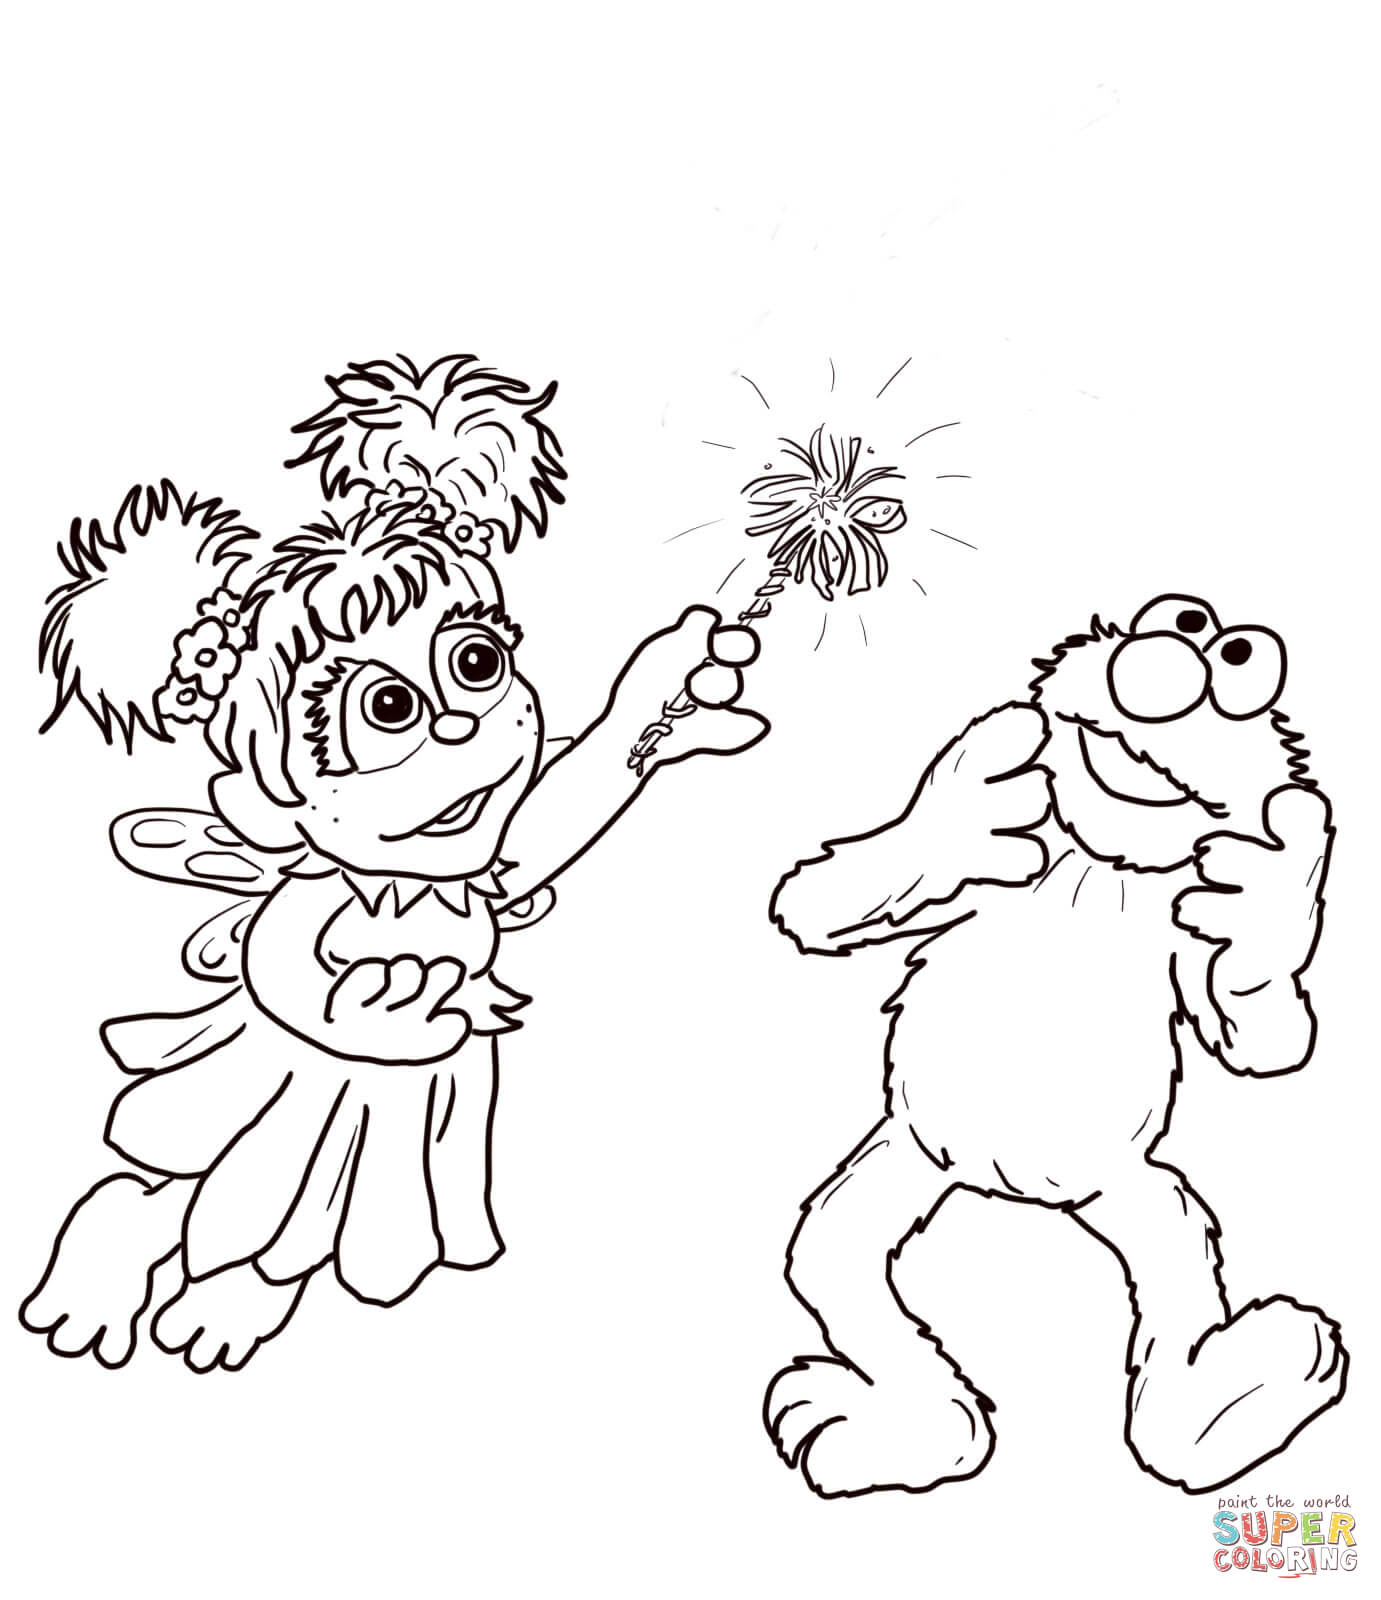 1381x1600 Reward Coloring Pages Of Baby Elmo Surfboard P